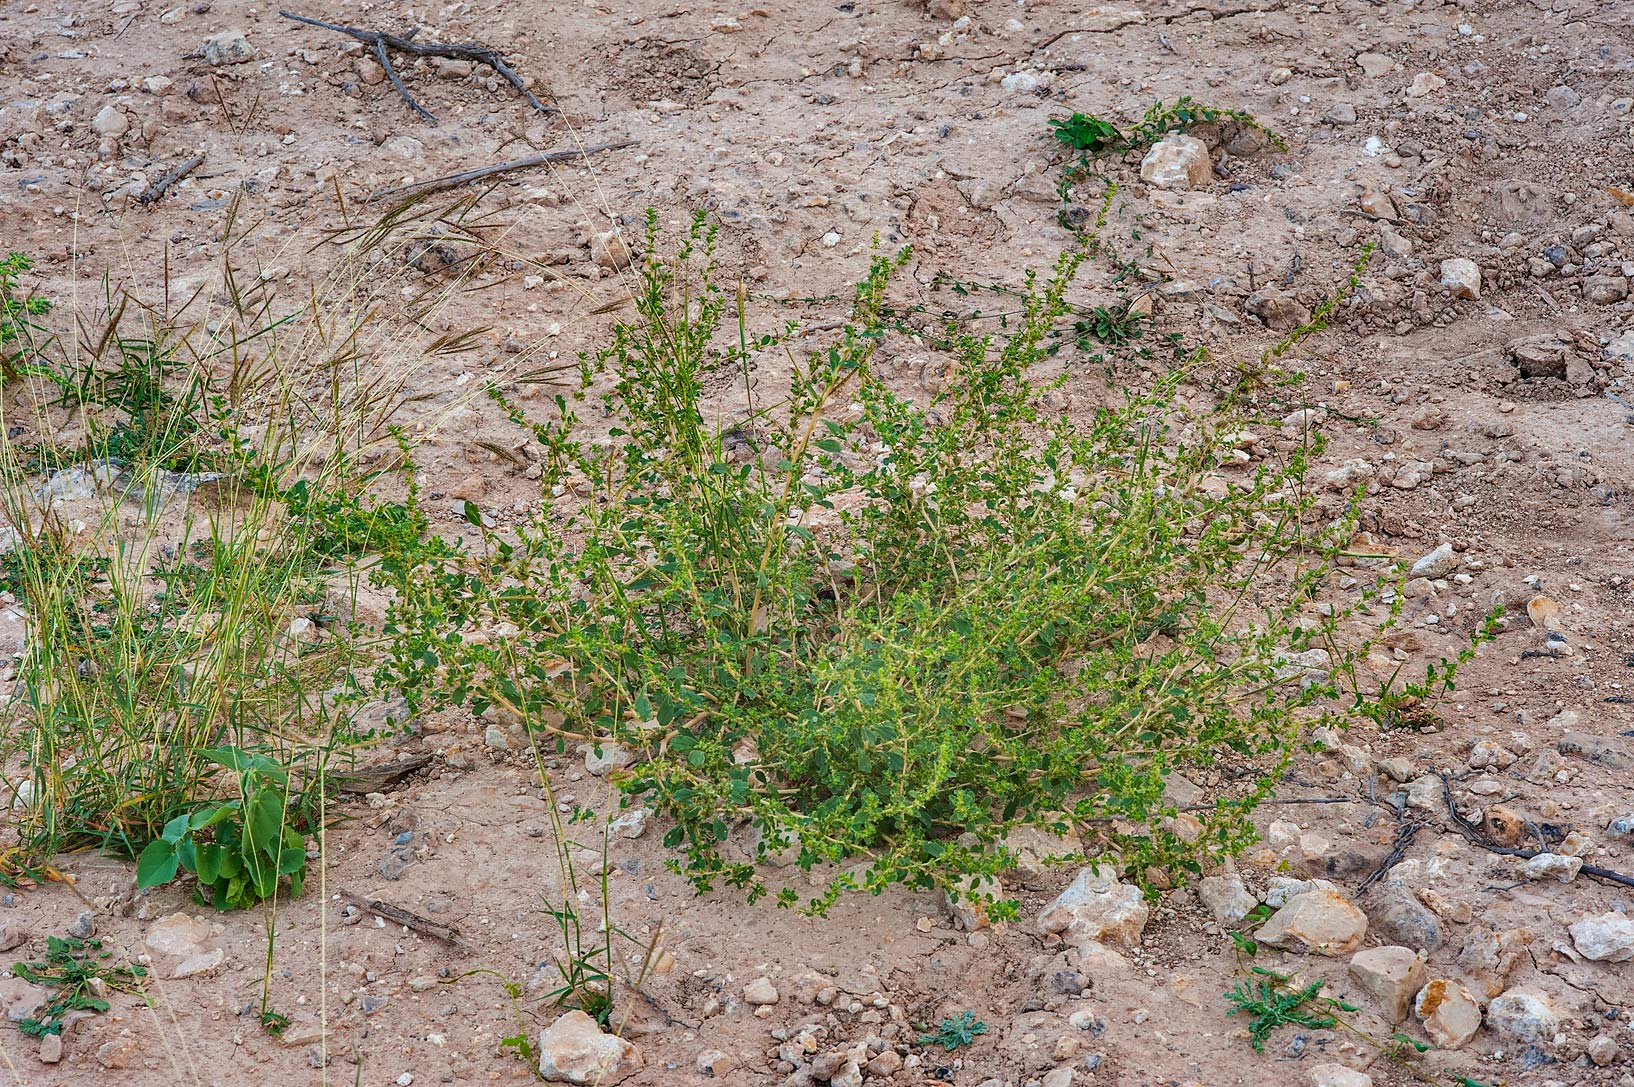 Common tumbleweed (Amaranthus albus) in a...of Al Magdah farms. Northern Qatar